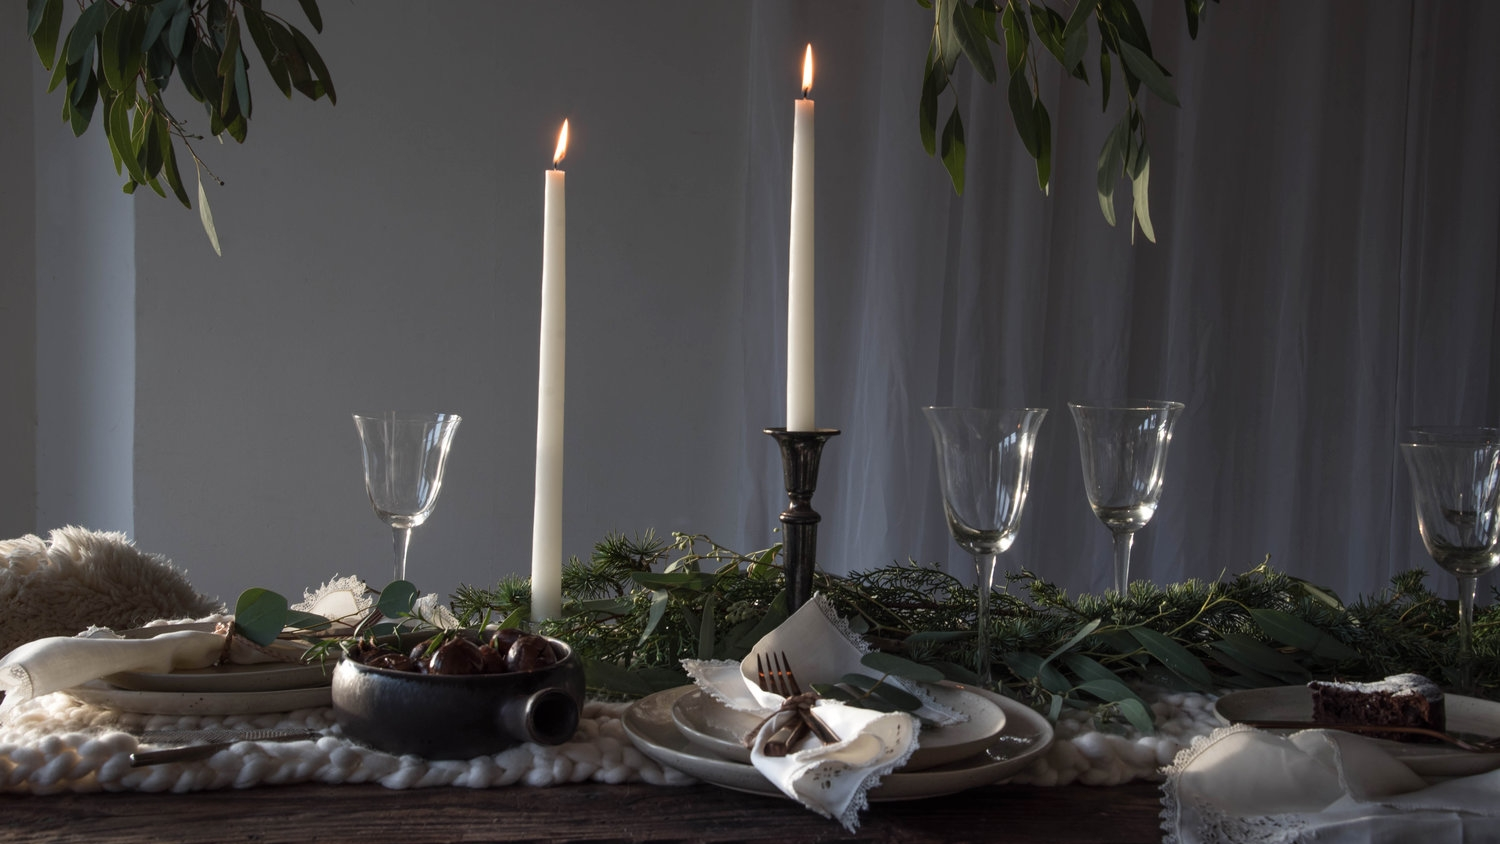 winter light - A holiday table setting inspired by a moody Nordic ambiance, where textures of wool and sheepskins combined with a bit of the outdoors in the form of various green branches.